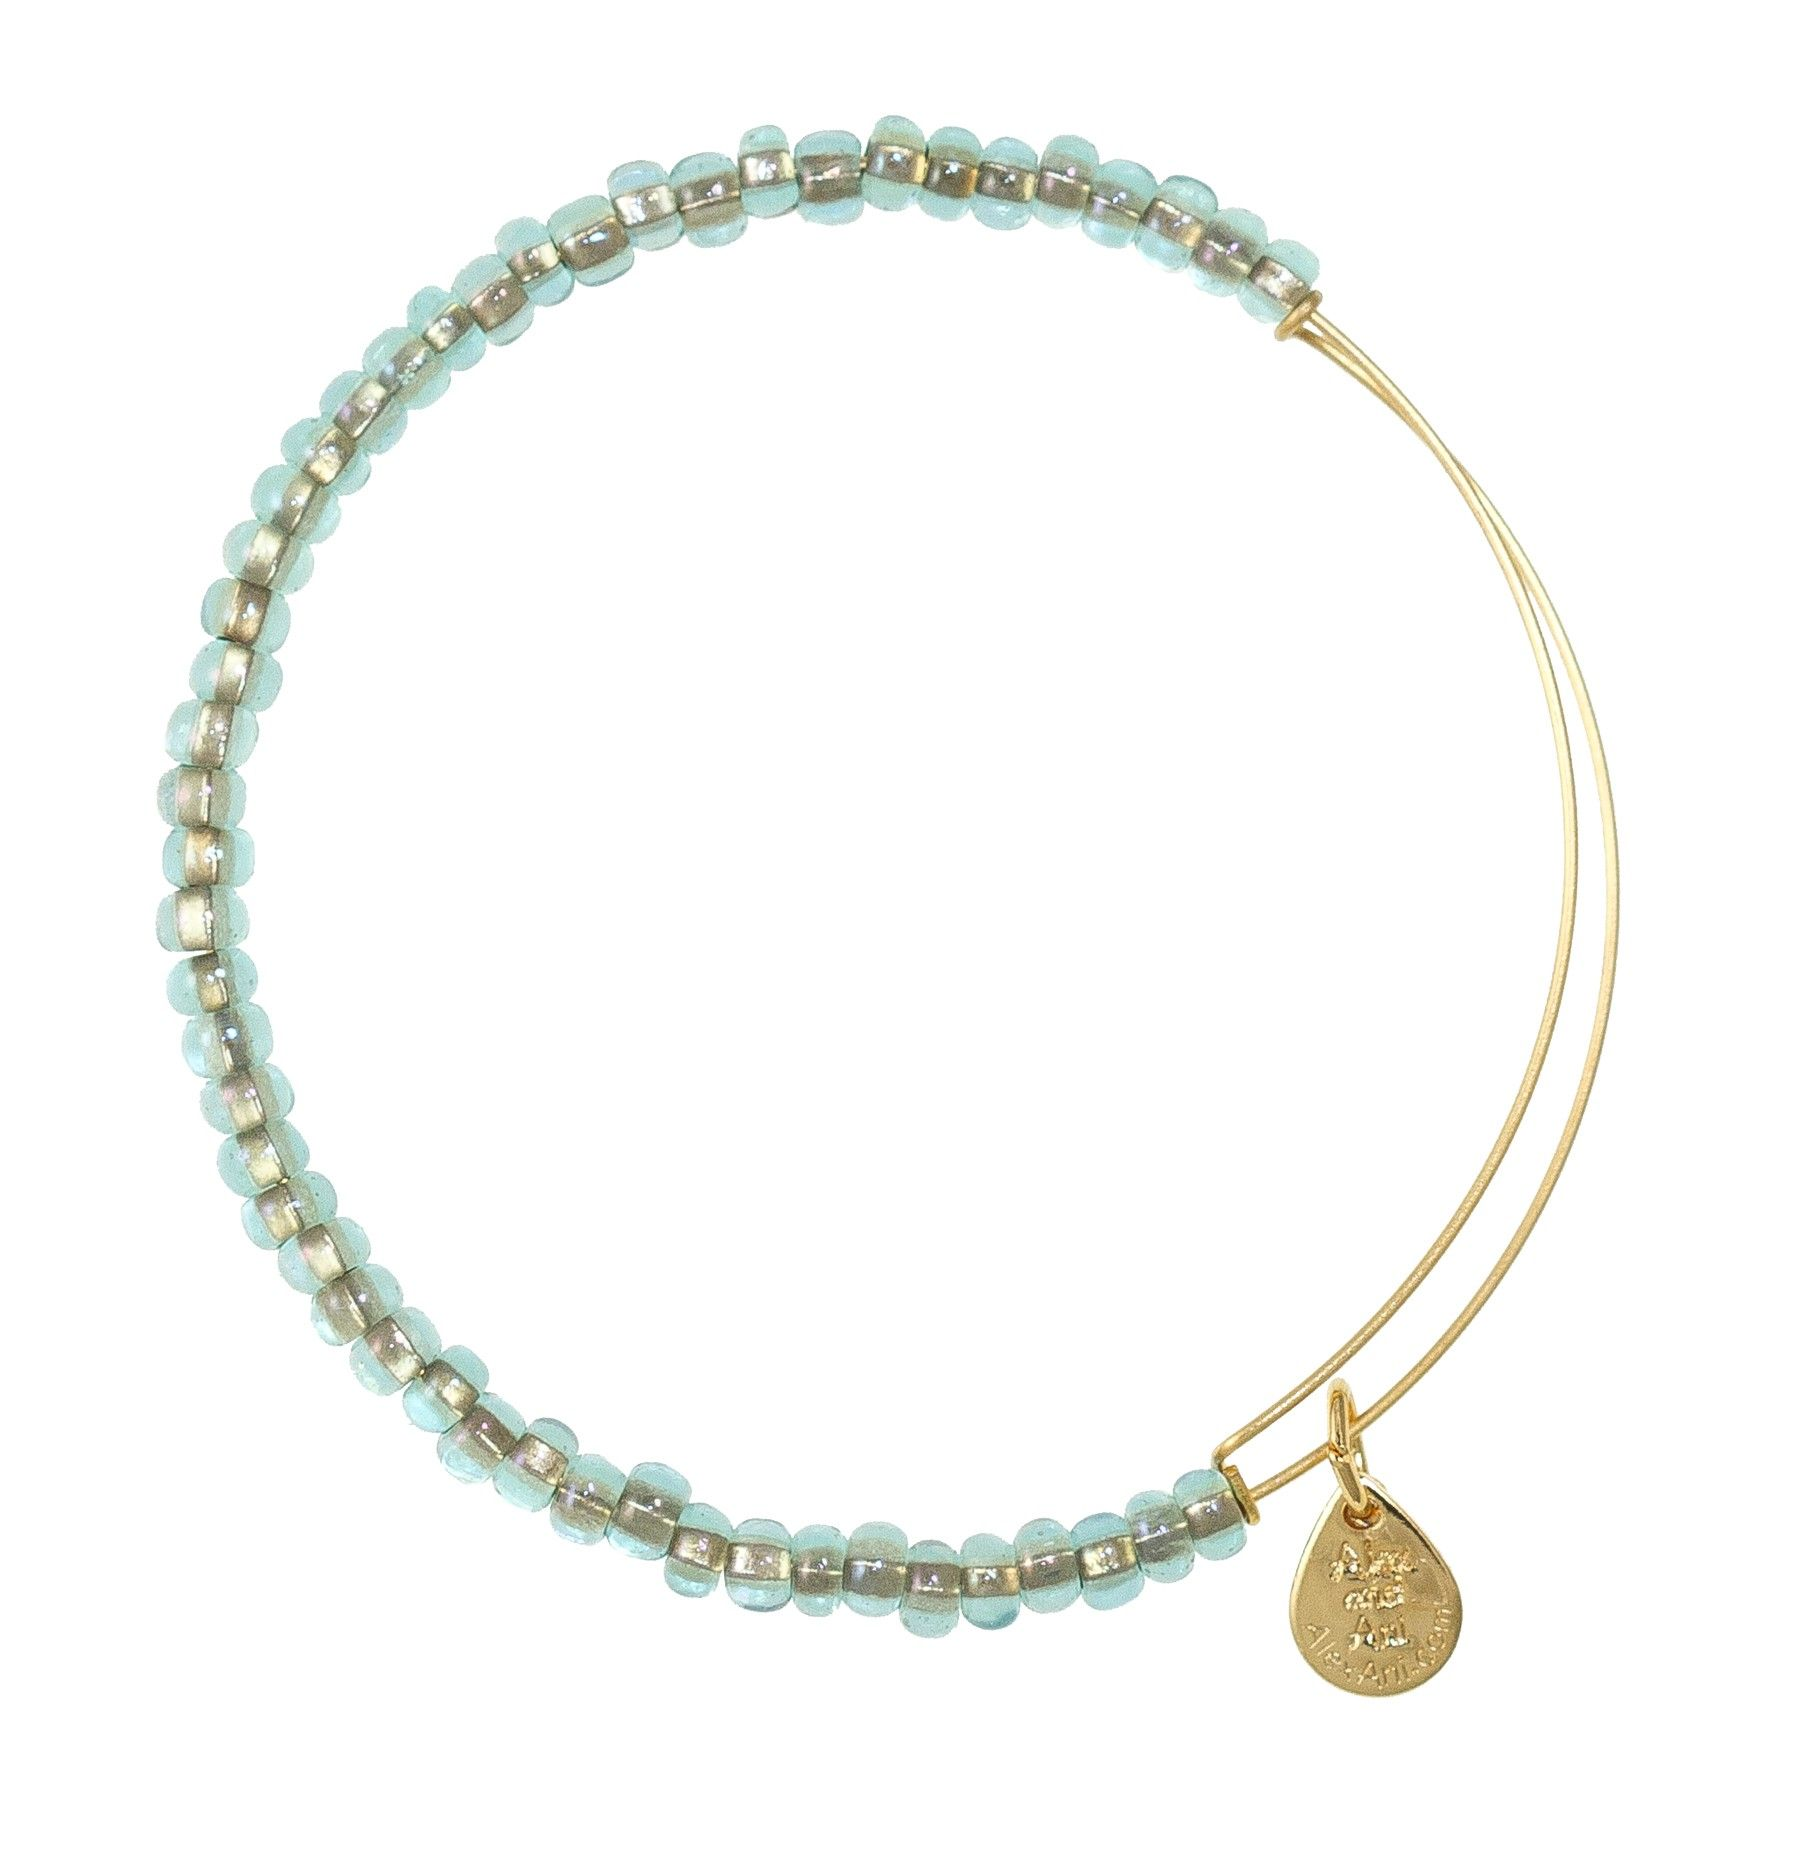 Like wondrous treasures found in the ocean, these sparkling glass beads are sure to inspire the enchantress within. Adorn yourself with the Shimmering Sea Bead Expandable Wire Bangle to pursue your deepest passions and let your inner goddess shine.     Closest color to my birthstone.